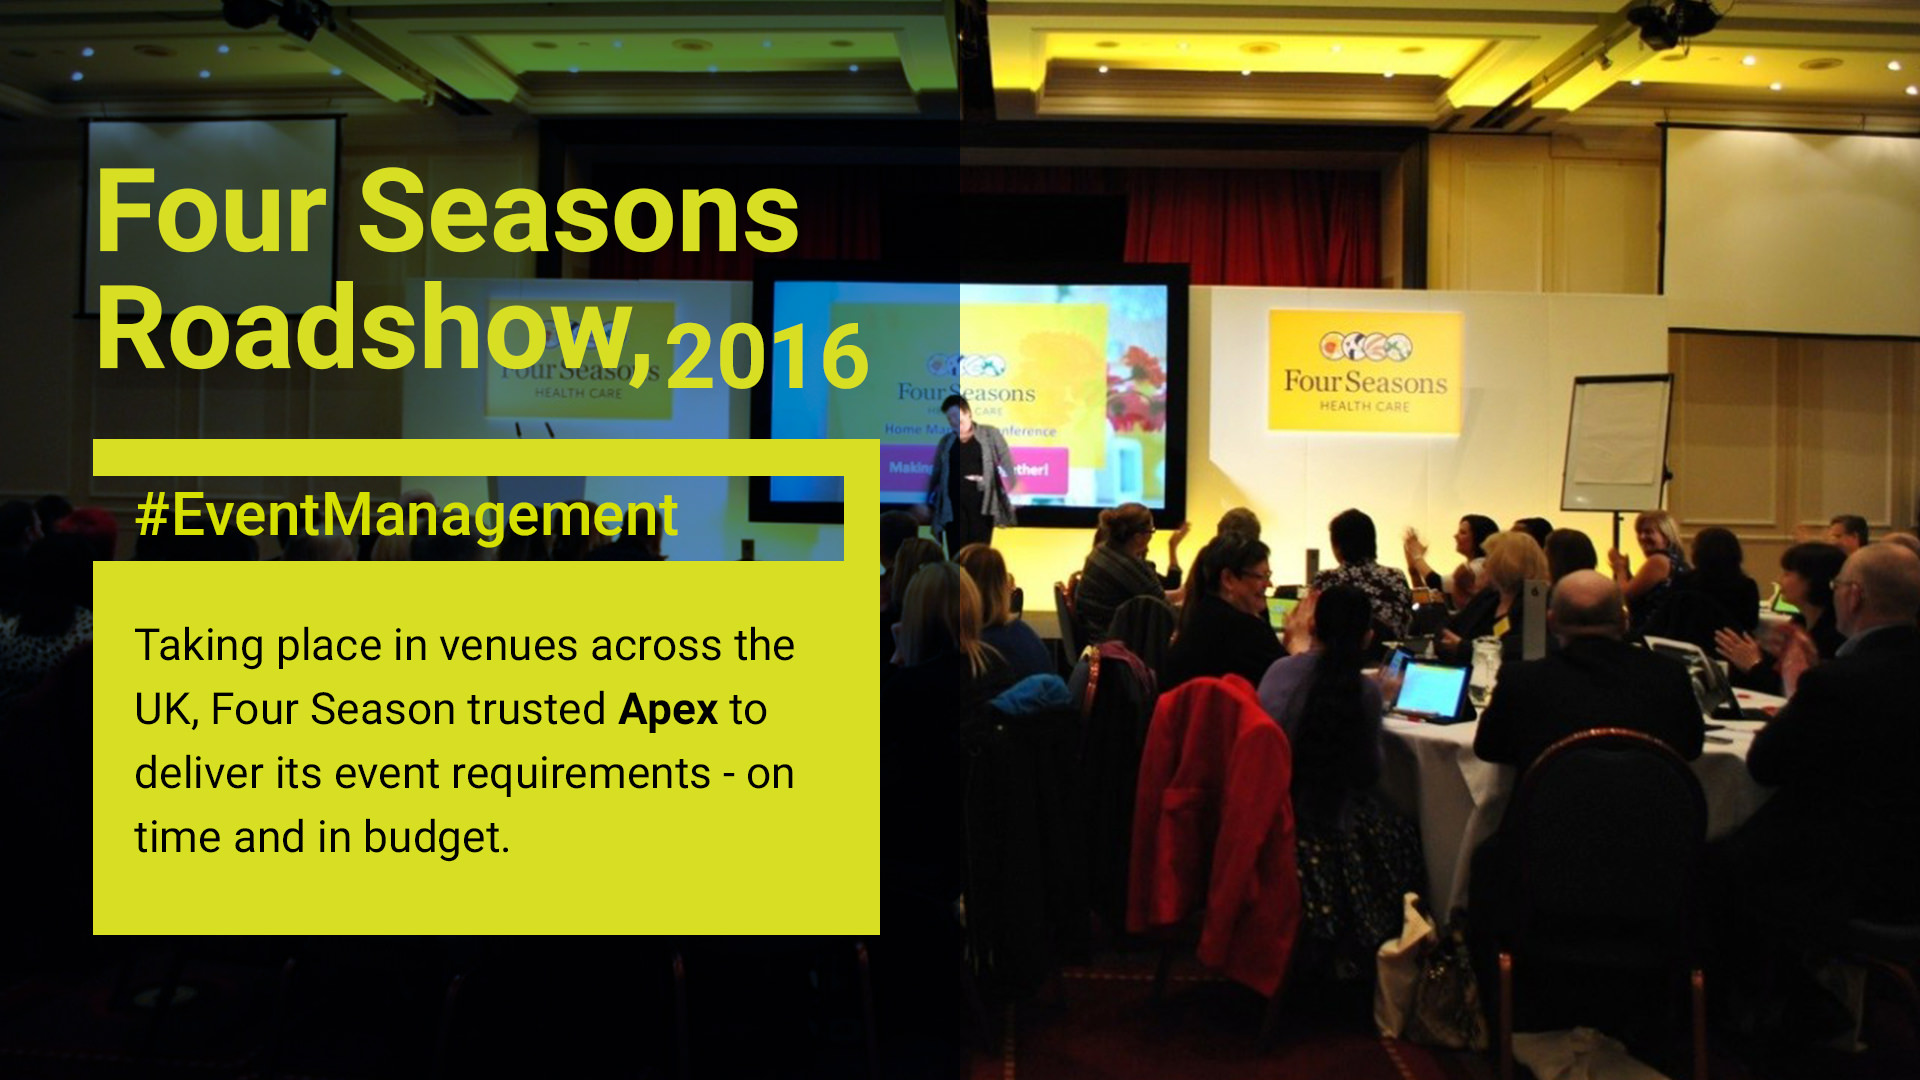 Four Seasons Roadshow 2016. Event management by Apex.